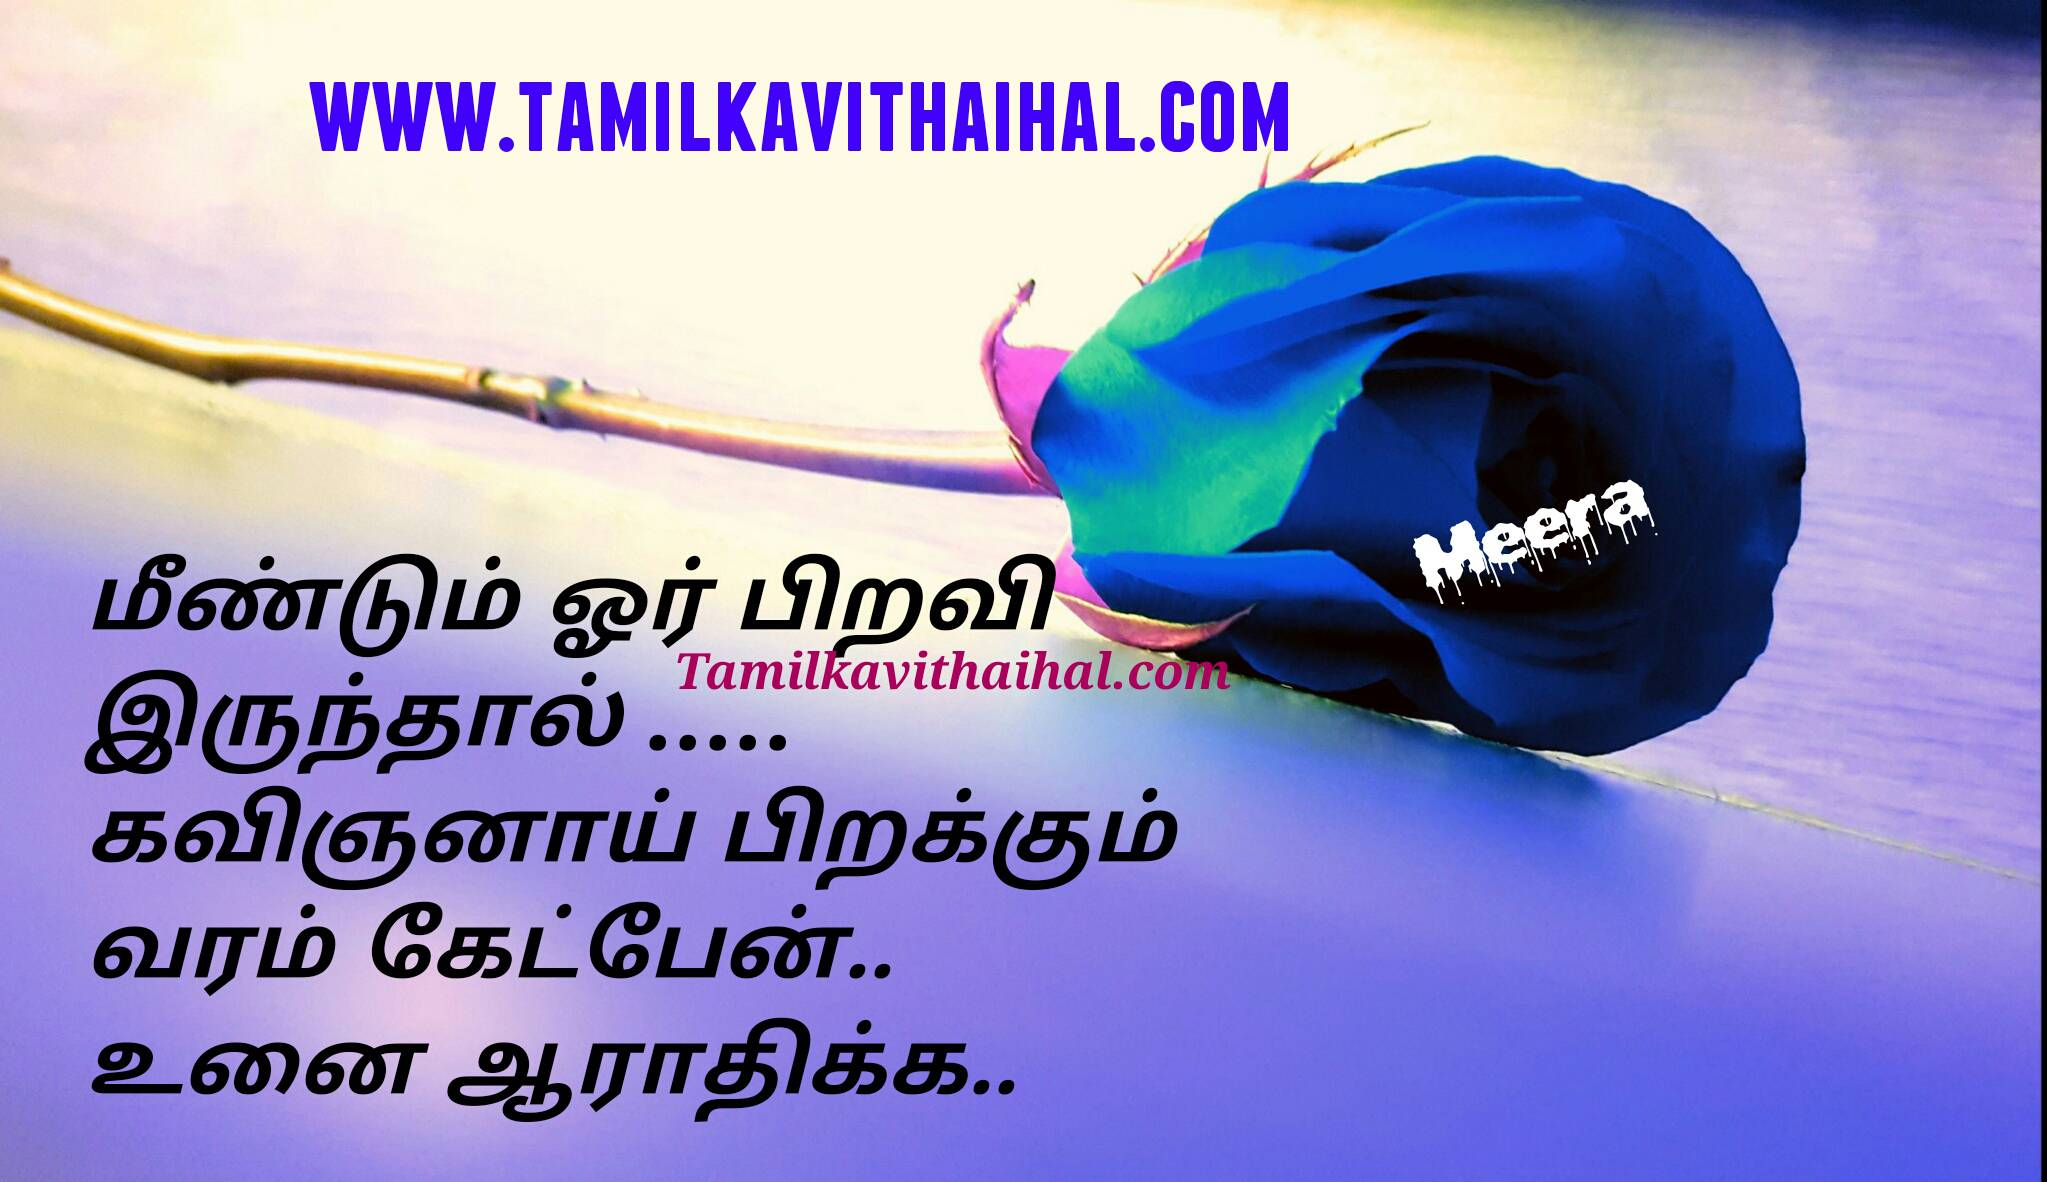 Beautiful love quotes in tamil language piravi love lover kavinkan kavithai varam ketpen meera poem whatsapp dp wallpaper